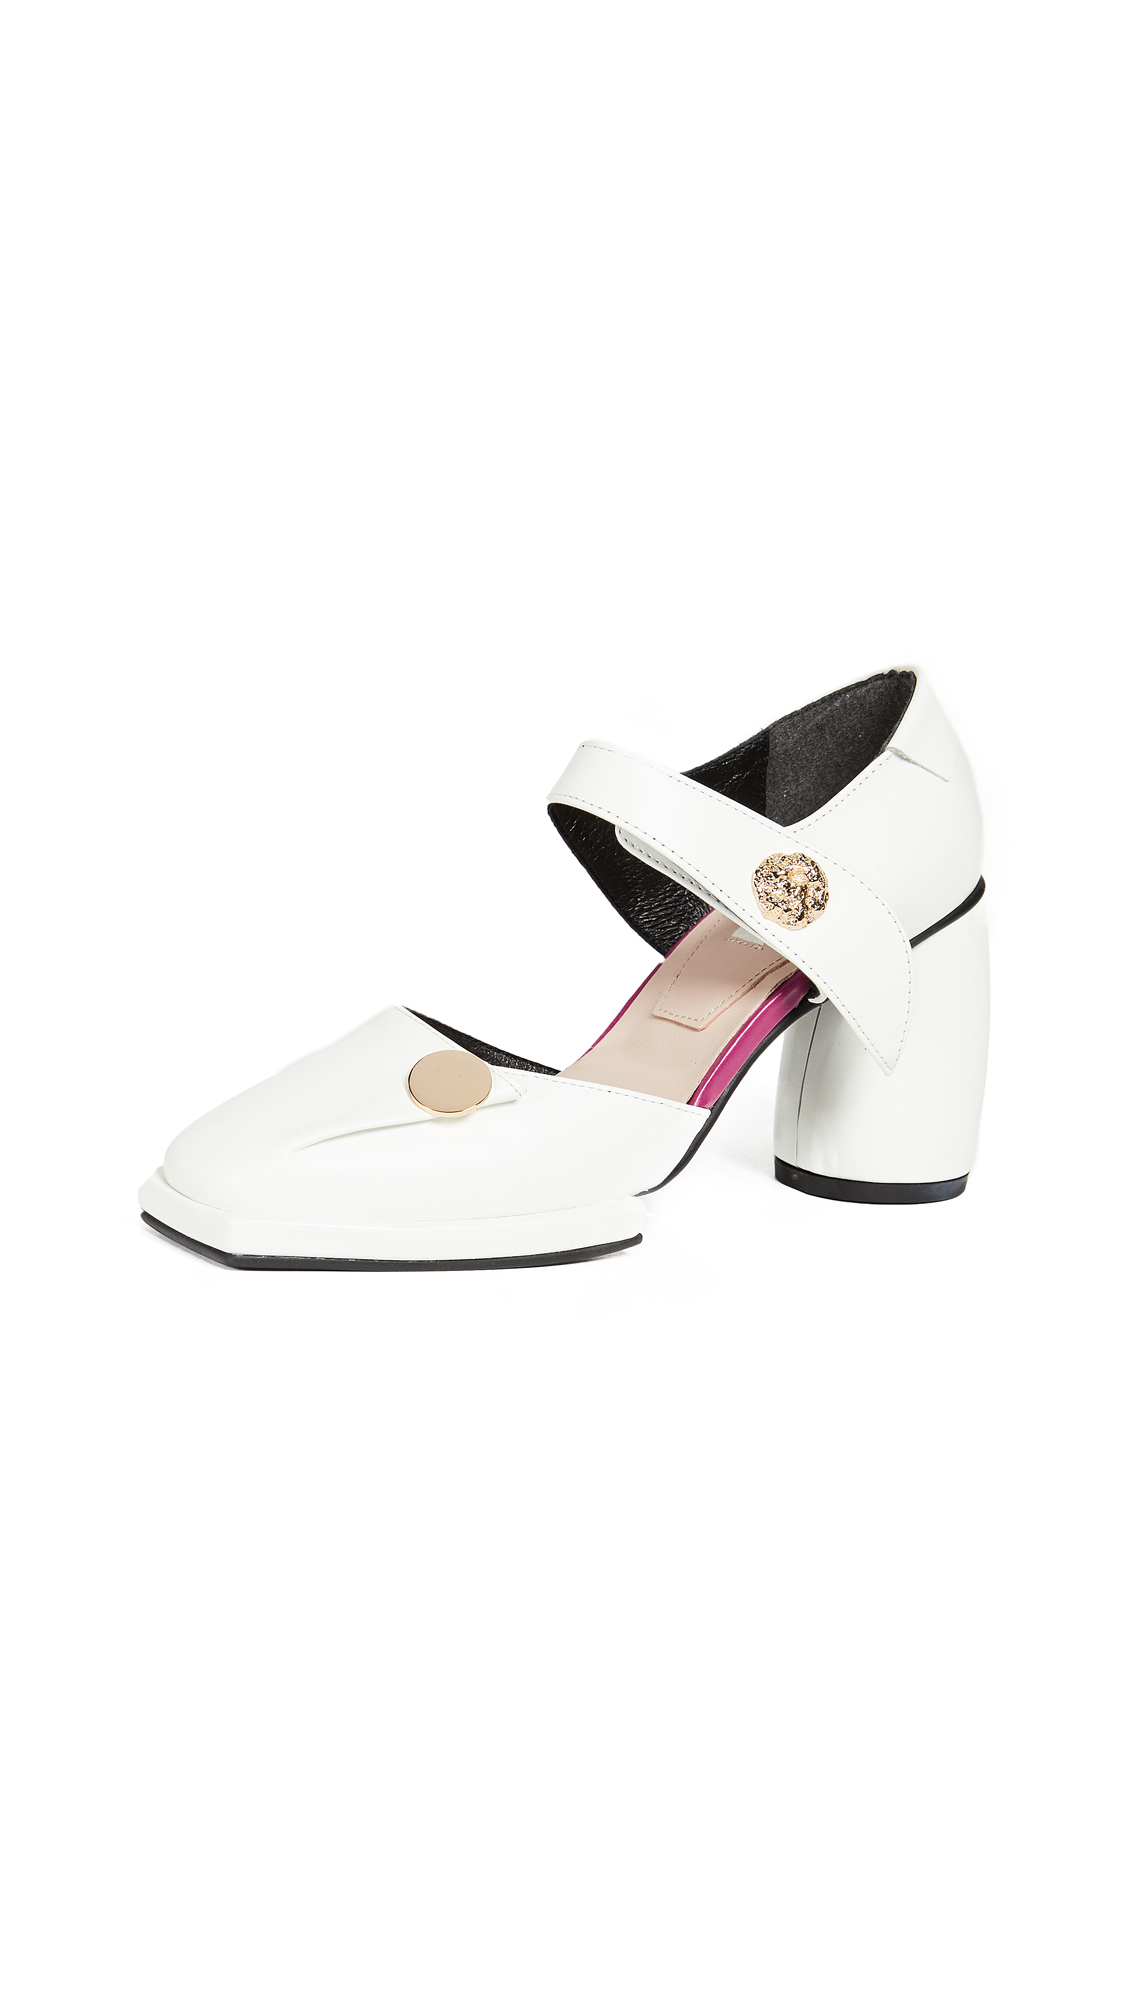 Reike Nen Maryjane Pumps